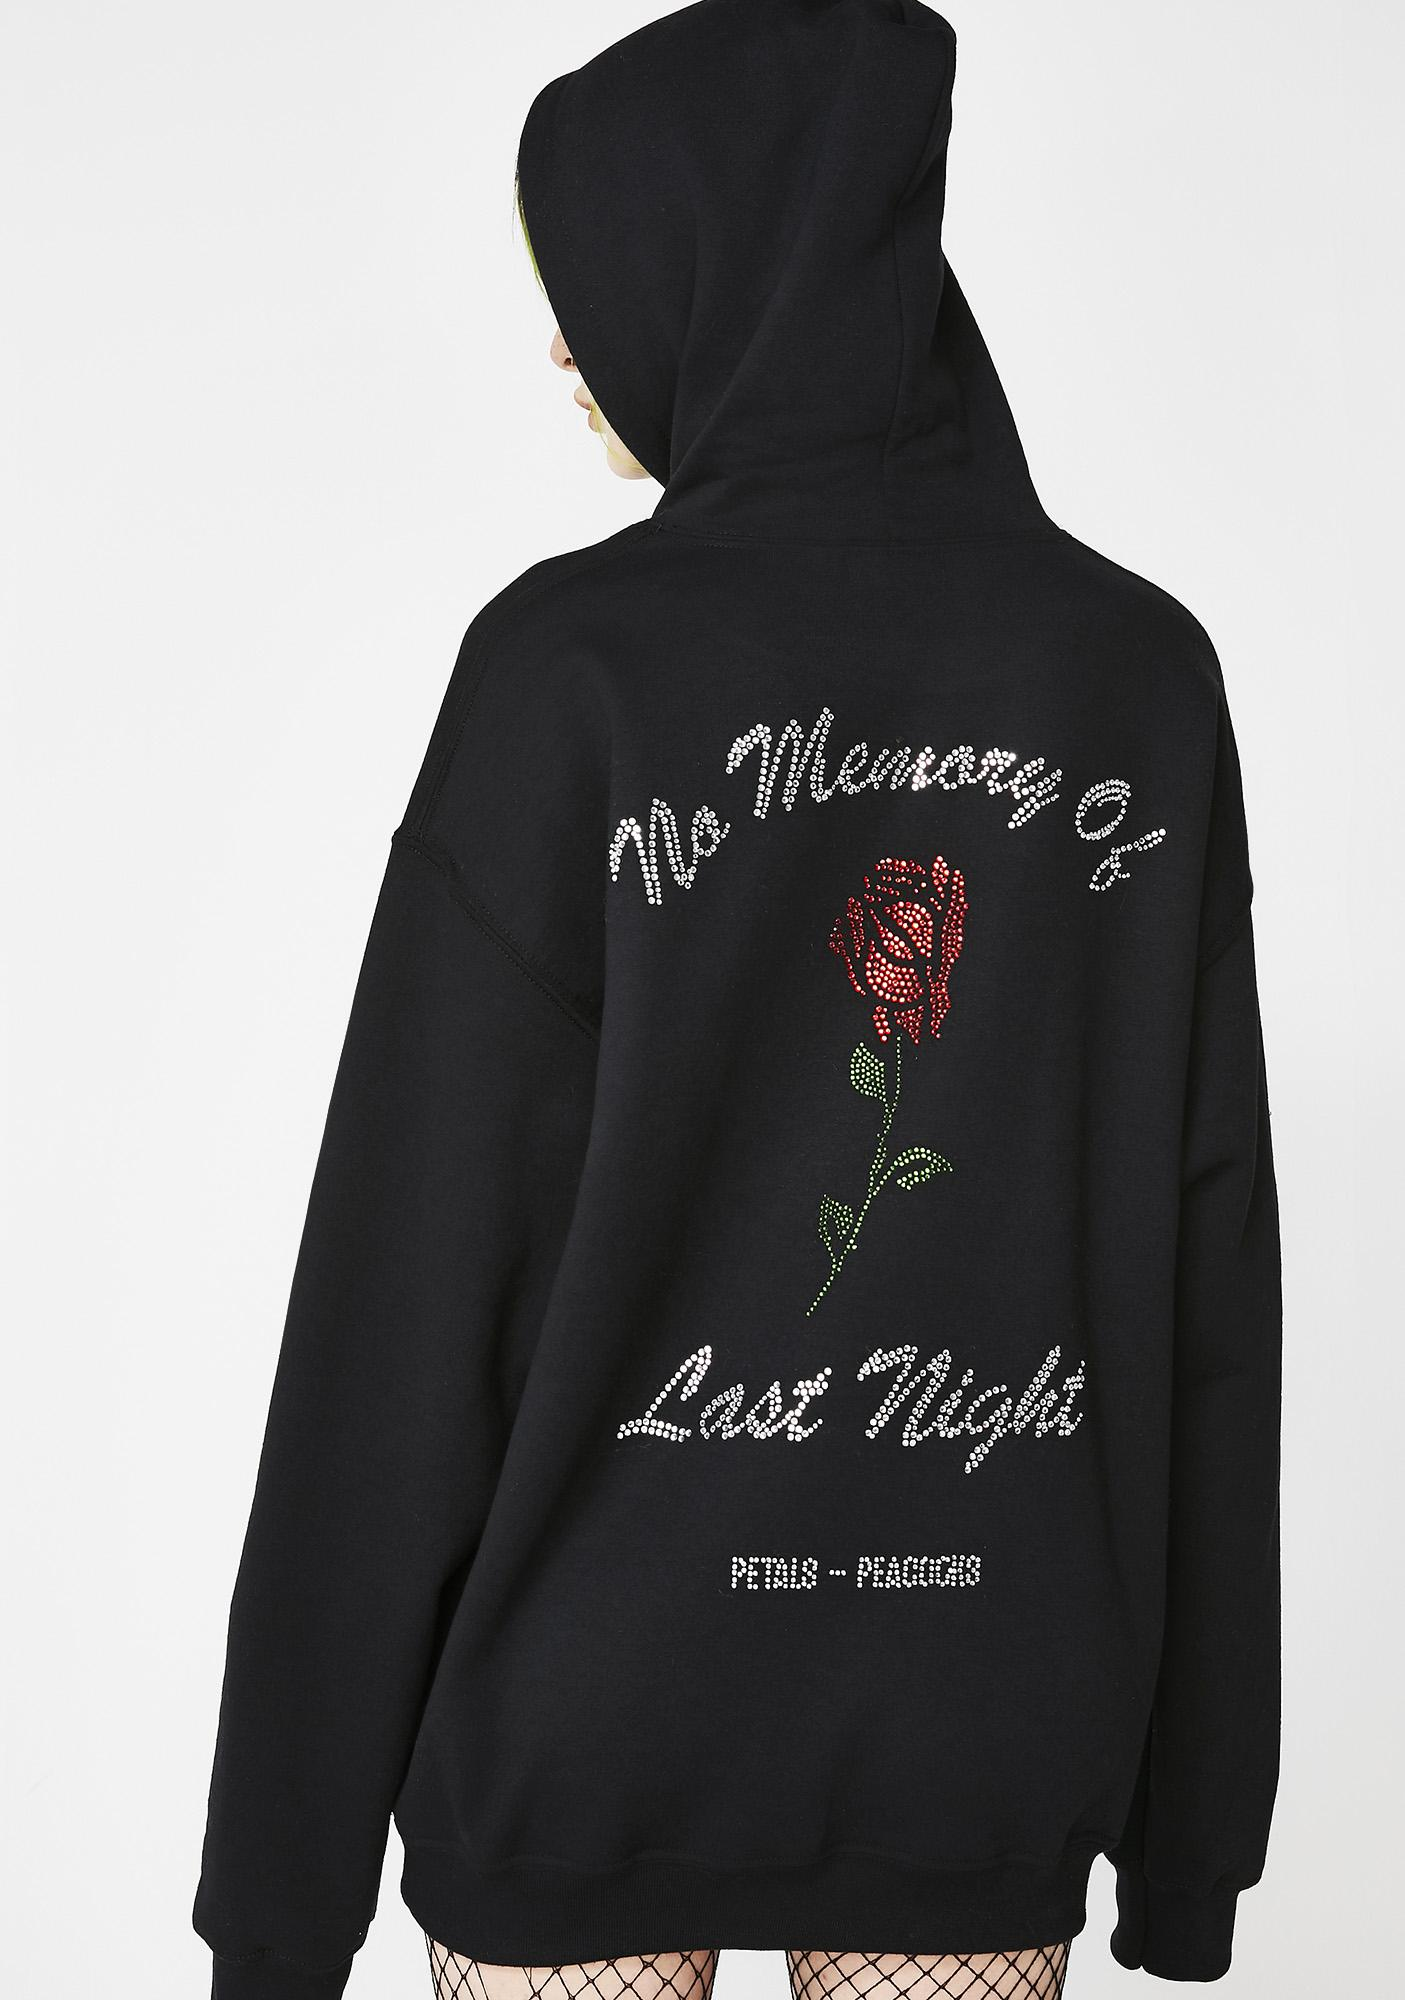 No Memory Hoodie by Petals And Peacocks